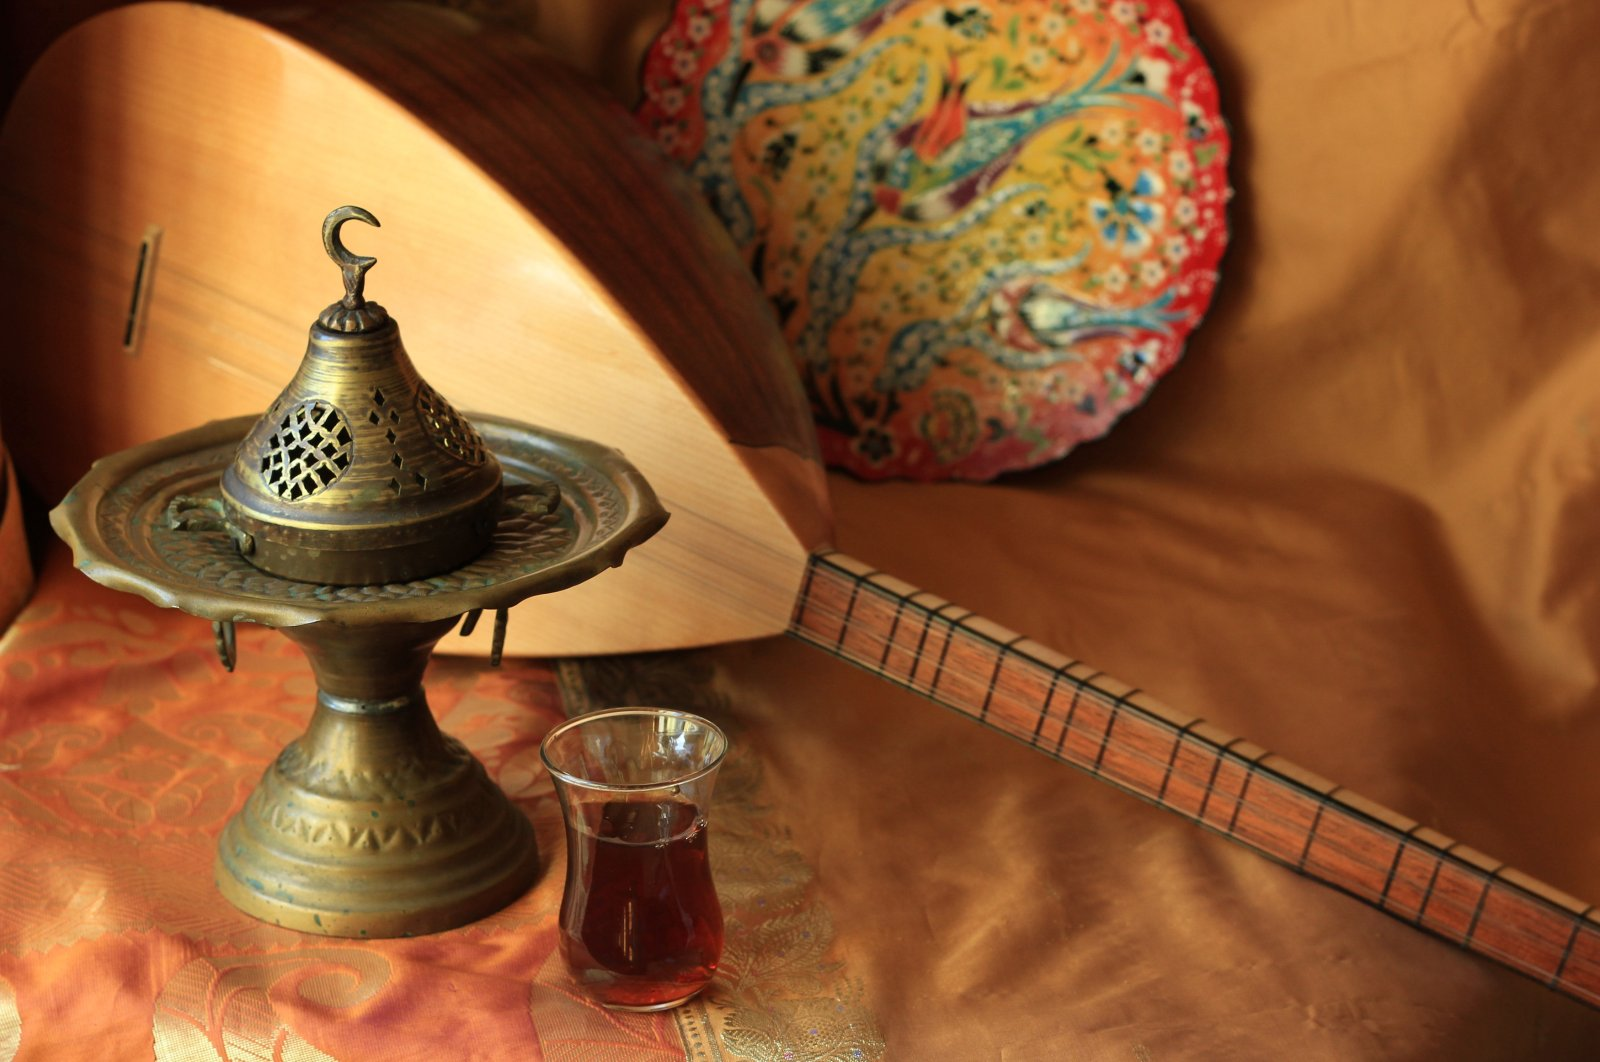 The Turkish instrument bağlama plays an important role in Sivas's traditional music and aşık tradition. (Shutterstock Photo)